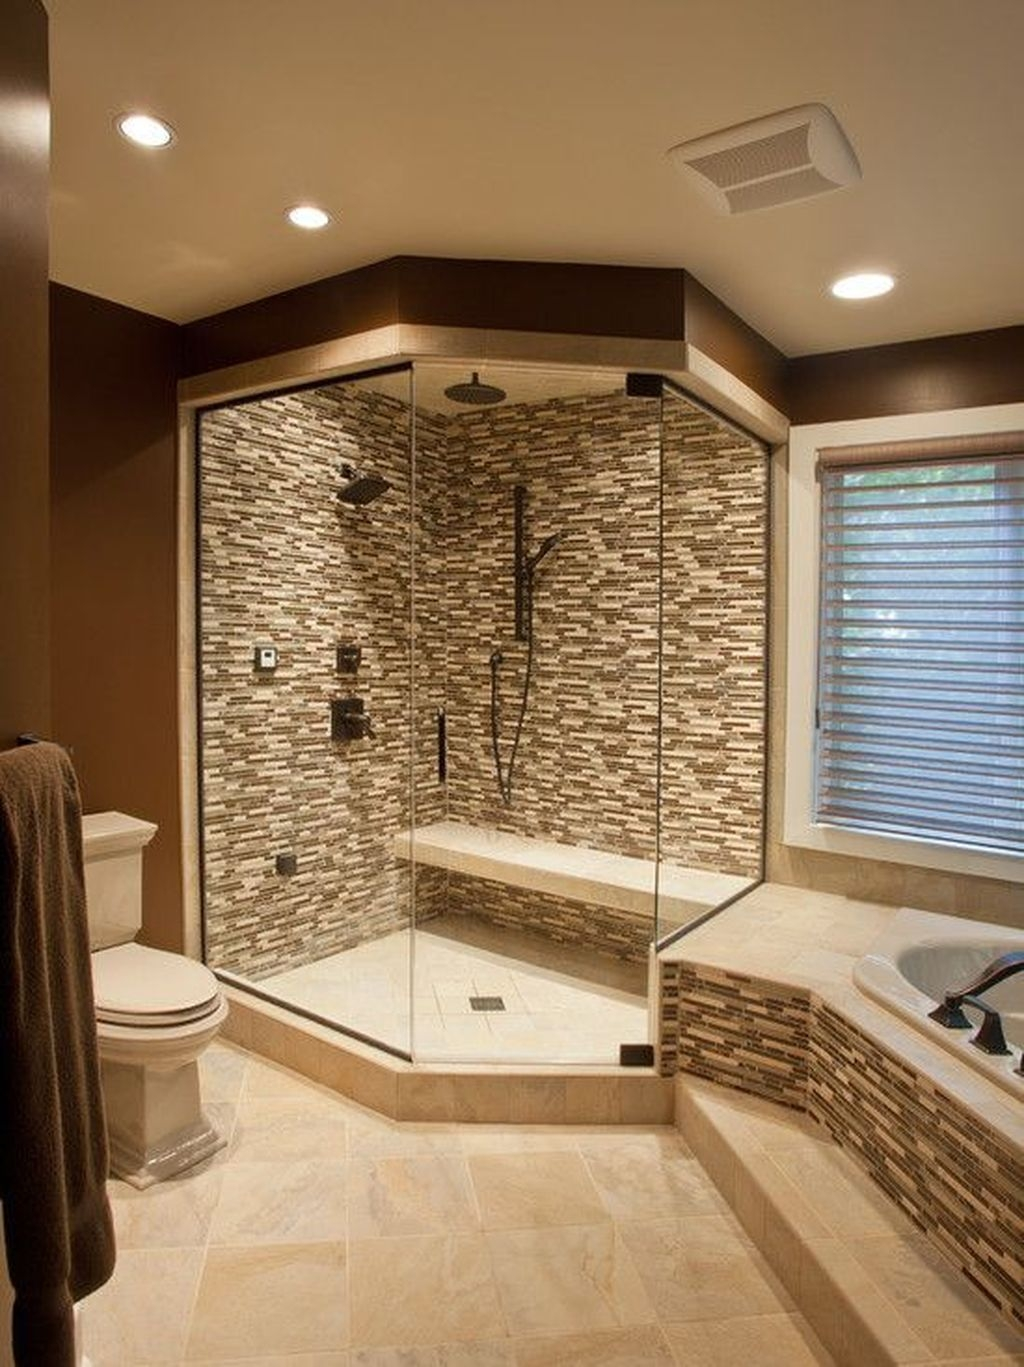 Inspiring Master Bathroom Decor And Design Ideas06